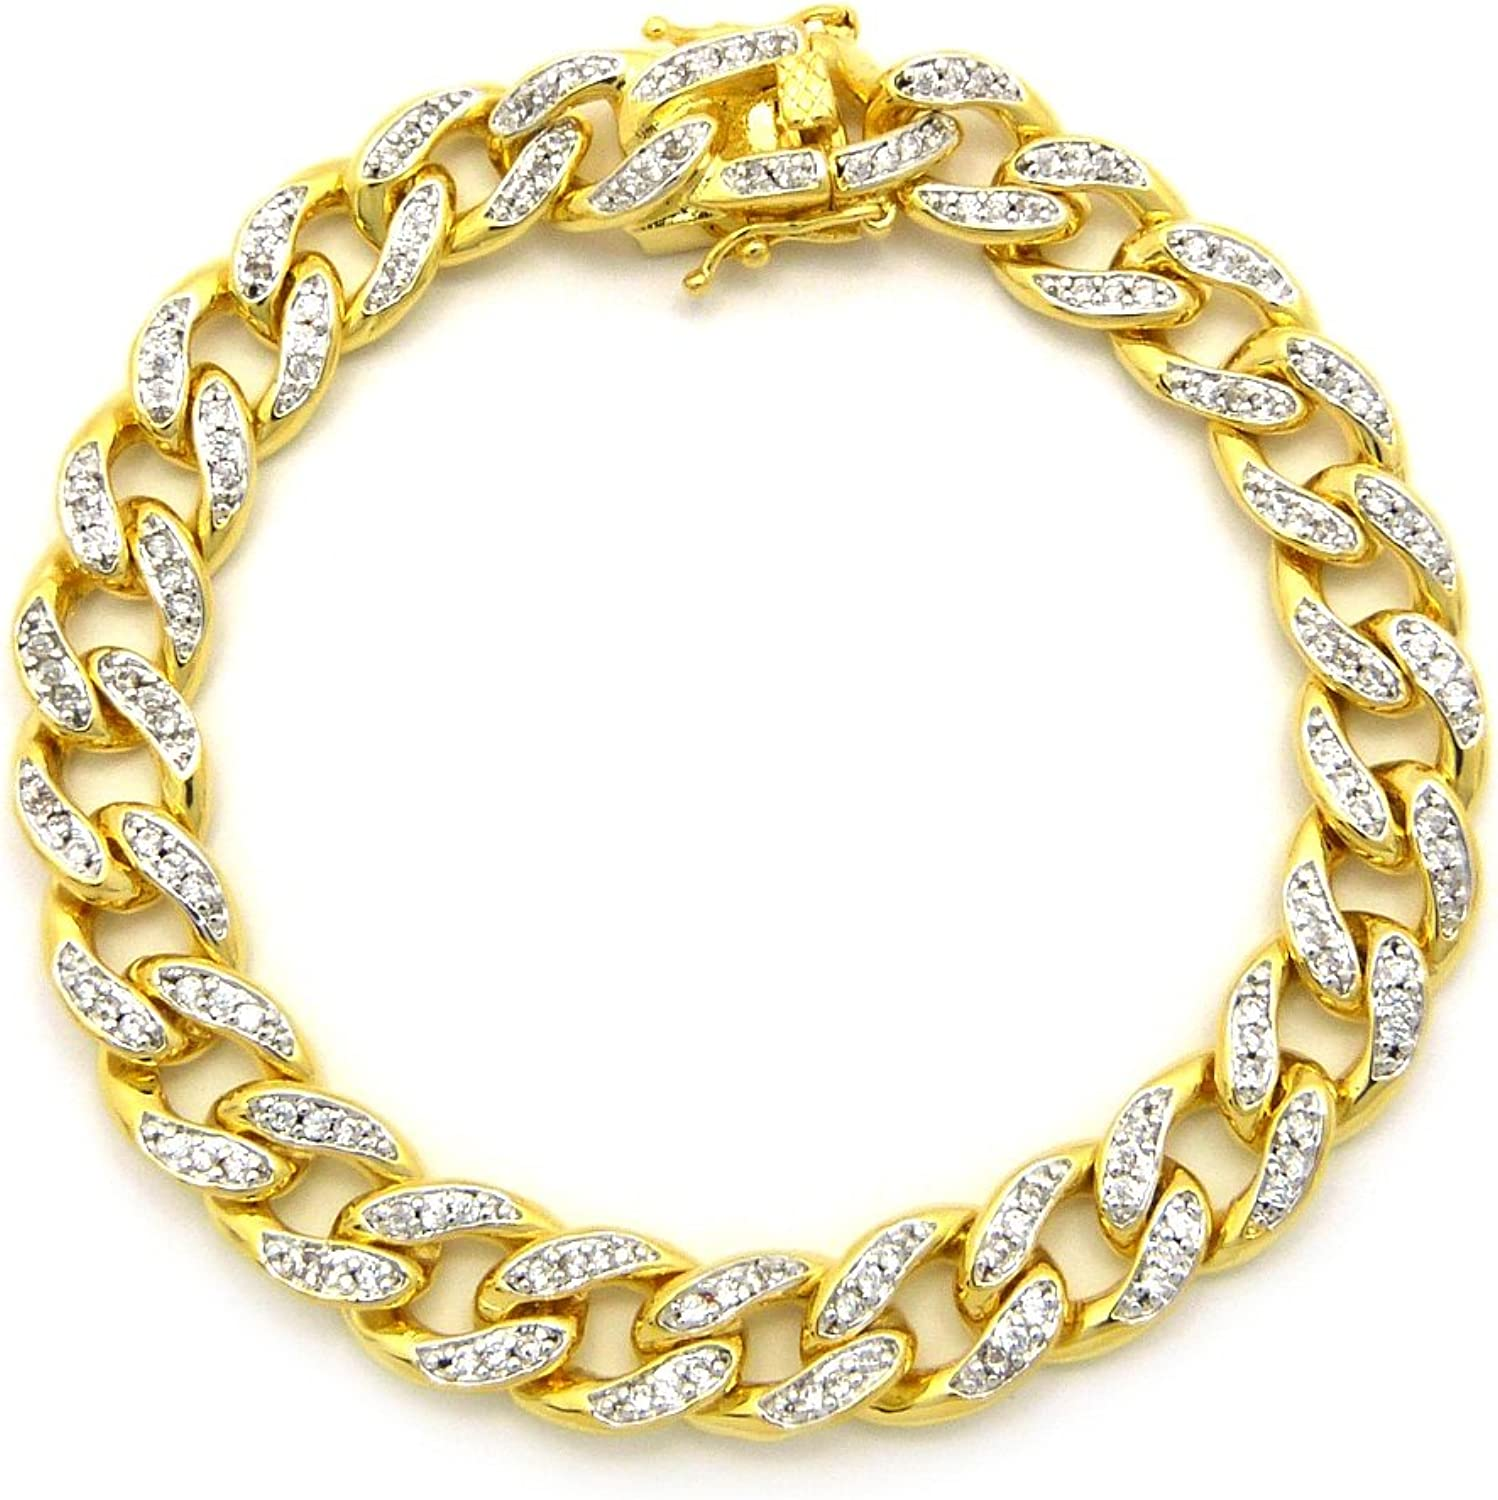 All stores are sold NYFASHION101 10mm Cubic High quality new Zirconia Heavy Plated C Gold Cuban Miami